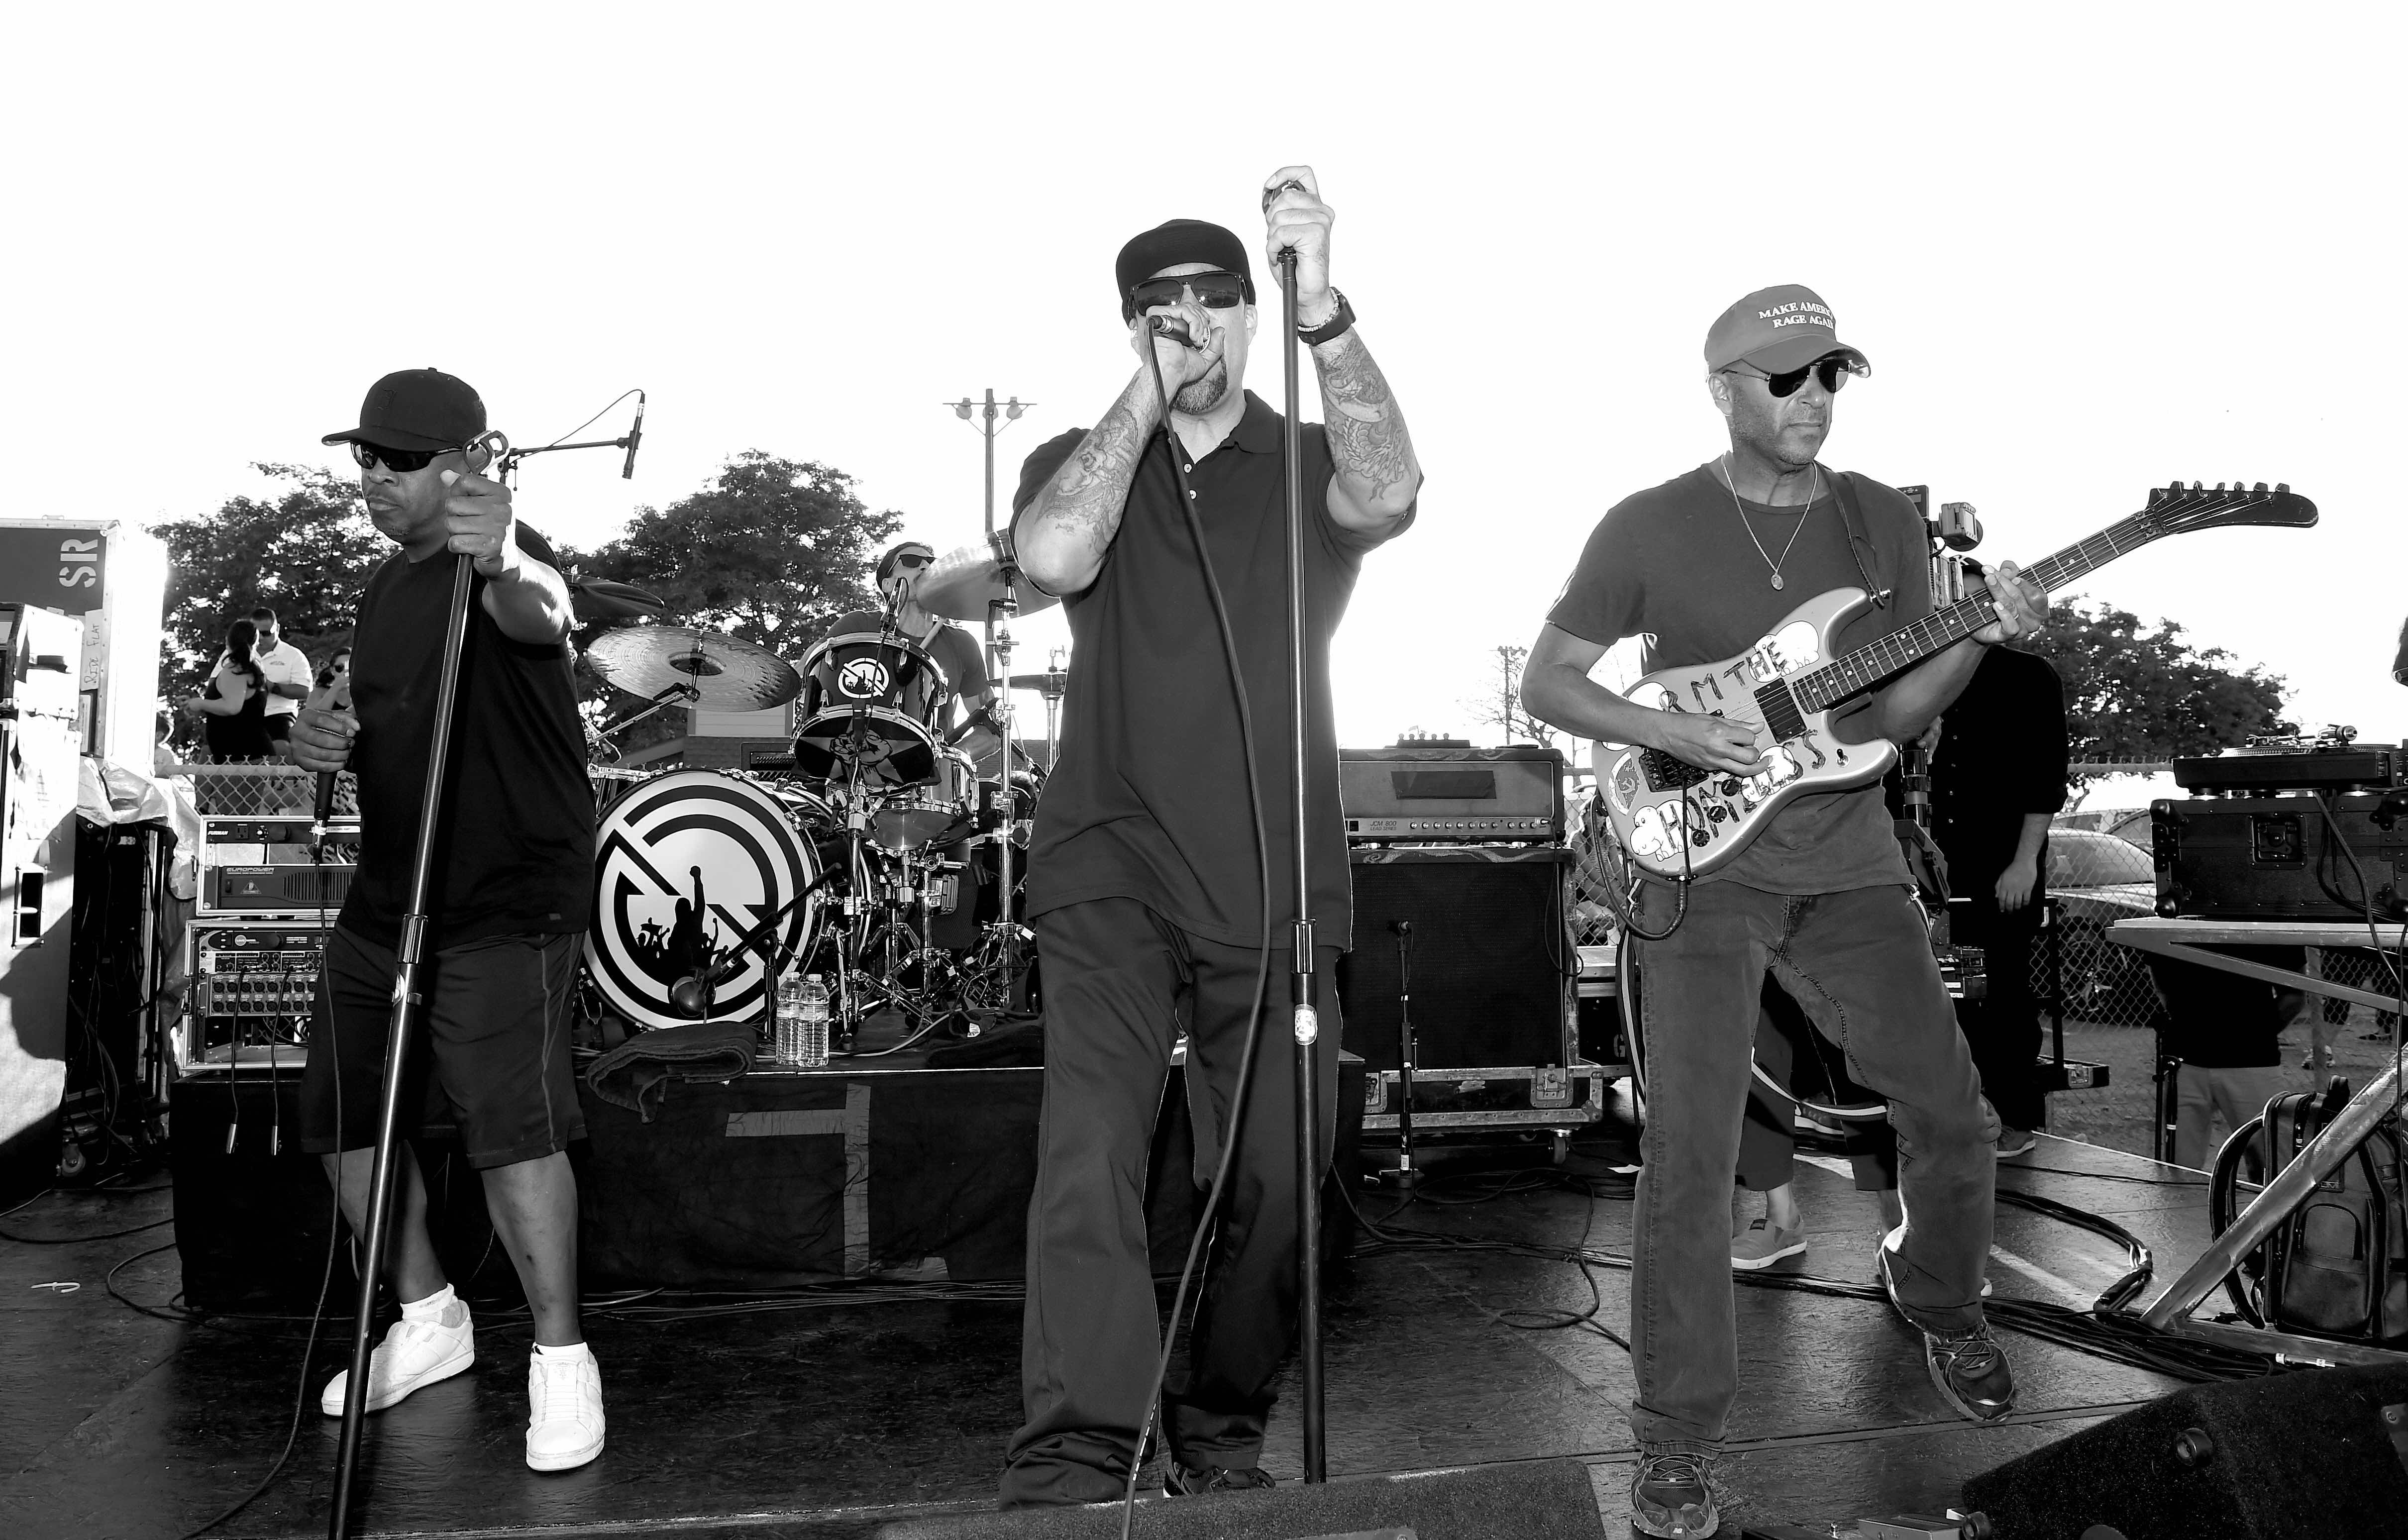 NORCO, CA - AUGUST 10:  (EDITOR'S NOTE: Image has been digitally converted to black and white.) (L-R) Musicians Chuck D, B-Re